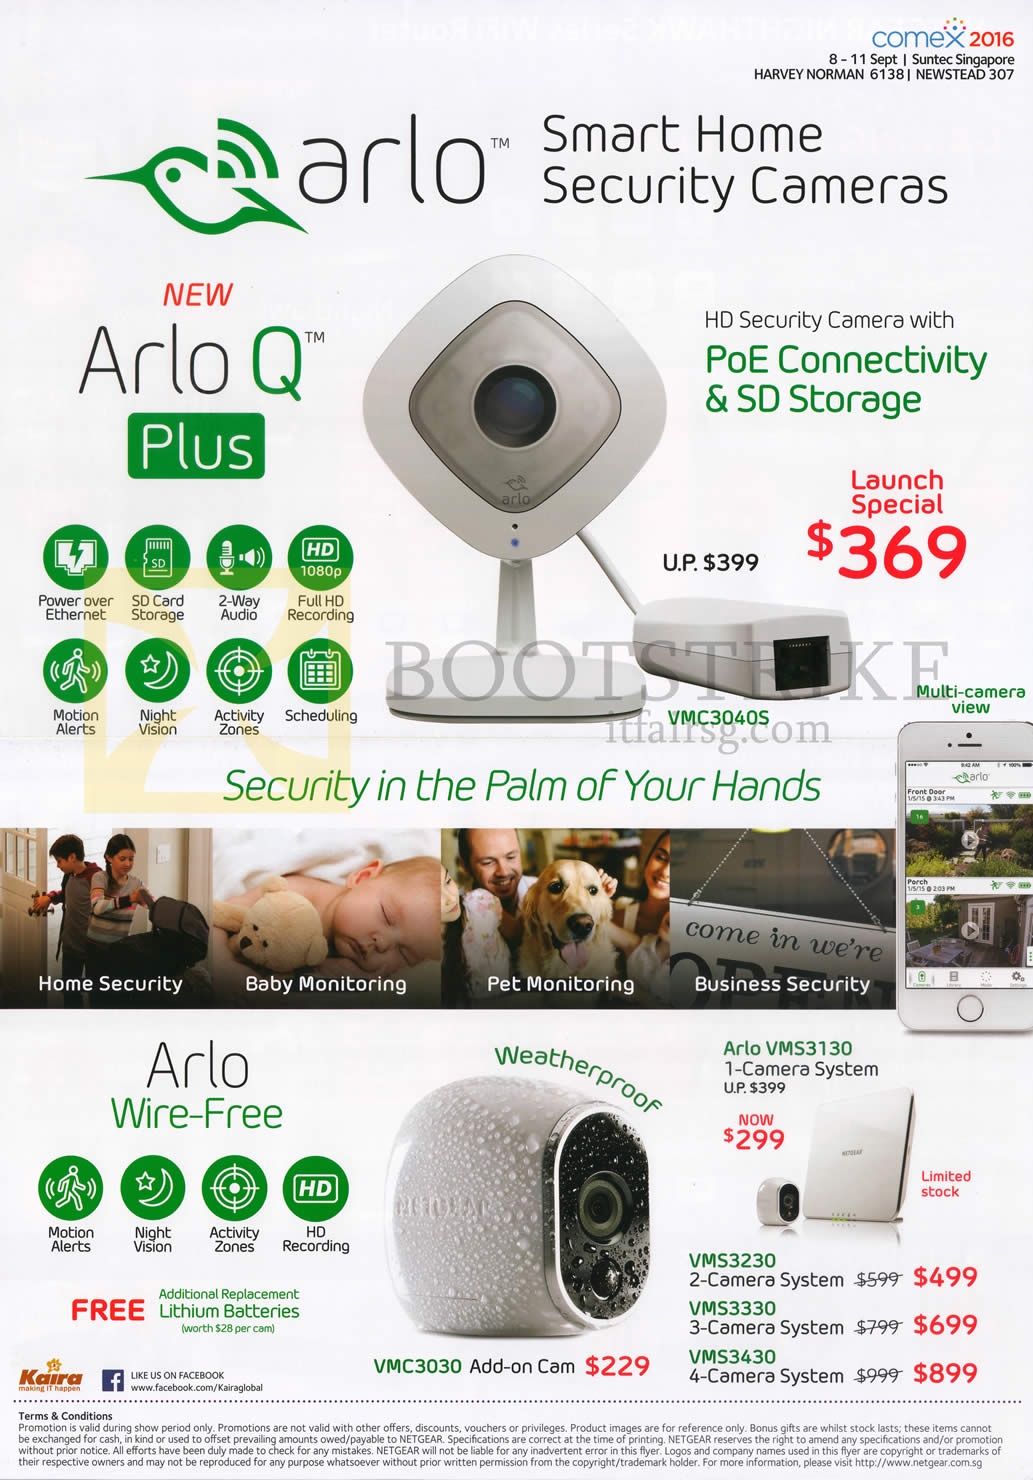 COMEX 2016 price list image brochure of Arlo Security Cameras Wire-Free, Arlo Q Plus, VMS3130, VMS3230, VMS3330, VMS3430